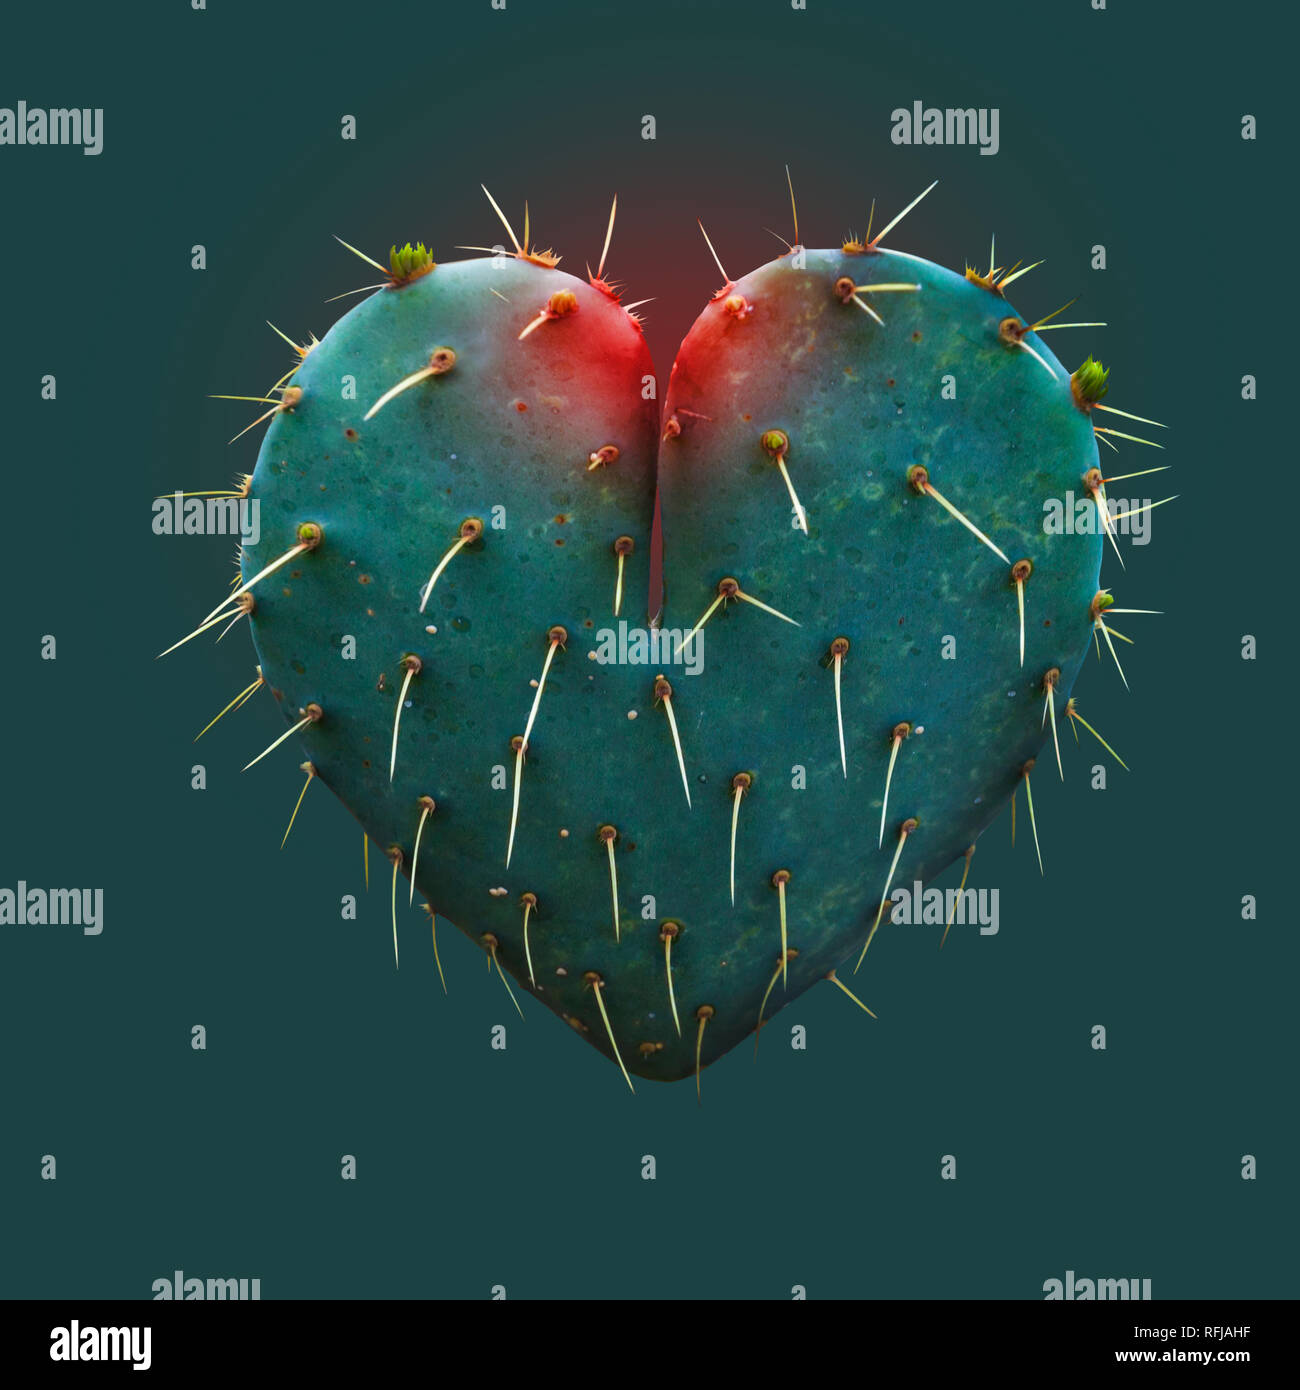 Cactus Leaf in the Shape of a Heart – Symbol of Love - Hope - Concept - Stock Image